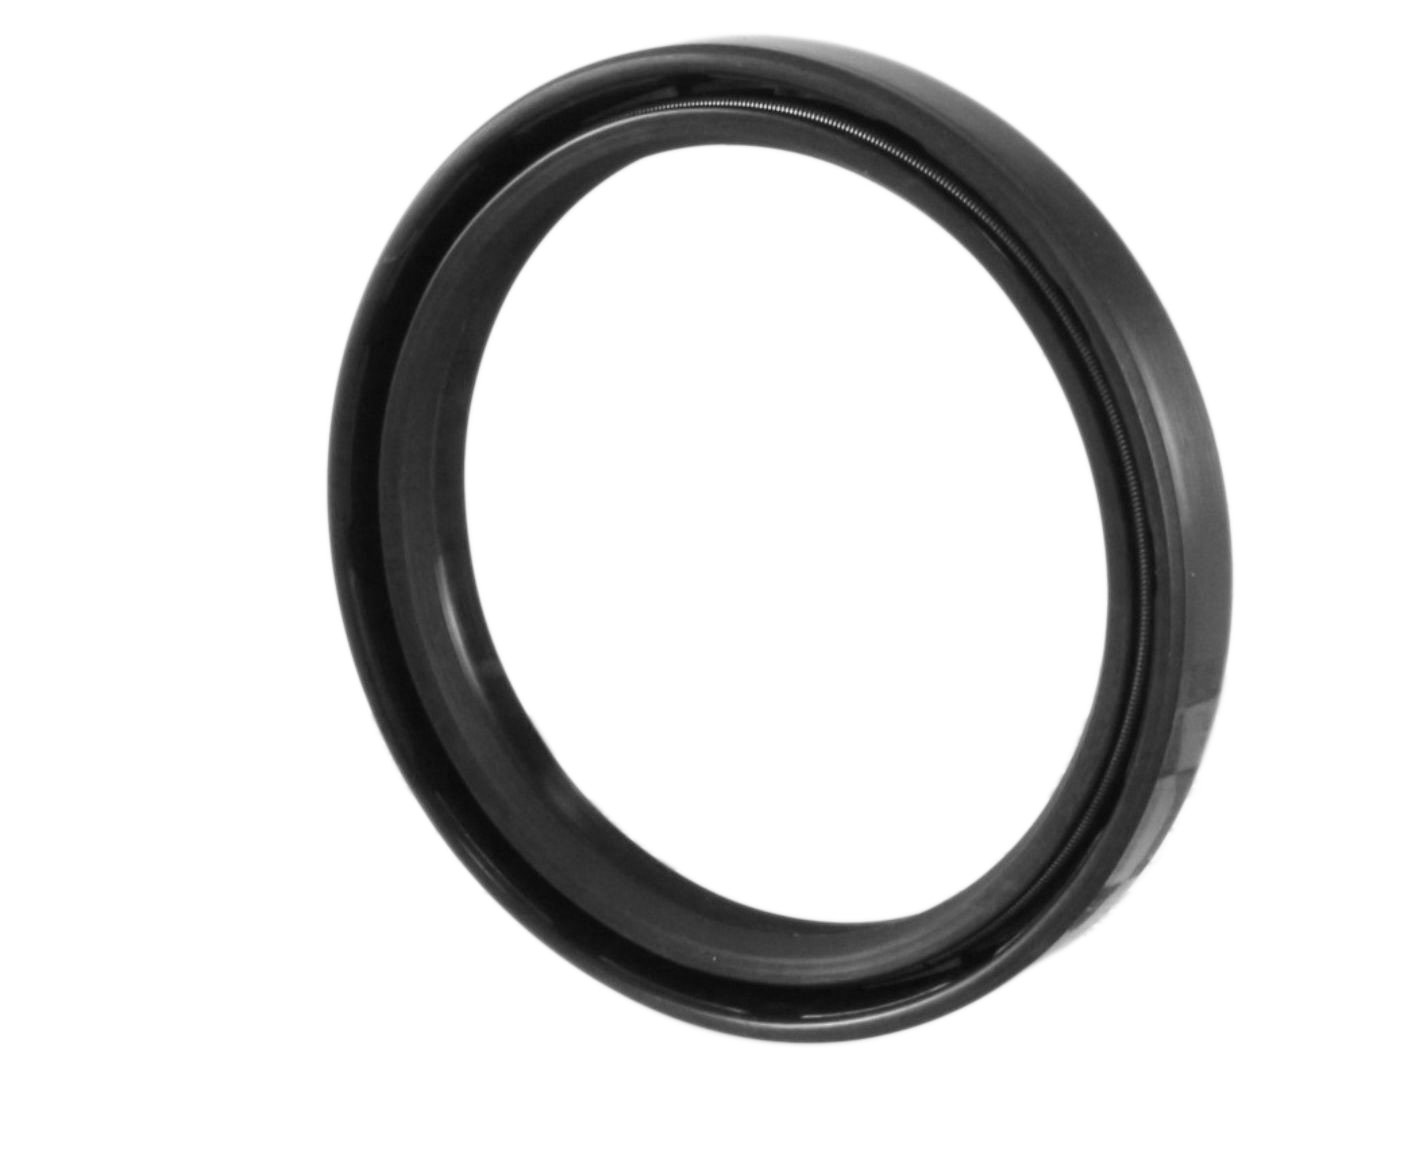 45mmX55mmX7mm Single Metal Case w//Nitrile Rubber Coating Oil Seal Grease Seal TC |EAI Double Lip w//Garter Spring 10 PCS 1.772x2.165x0.276 Oil Seal 45X55X7